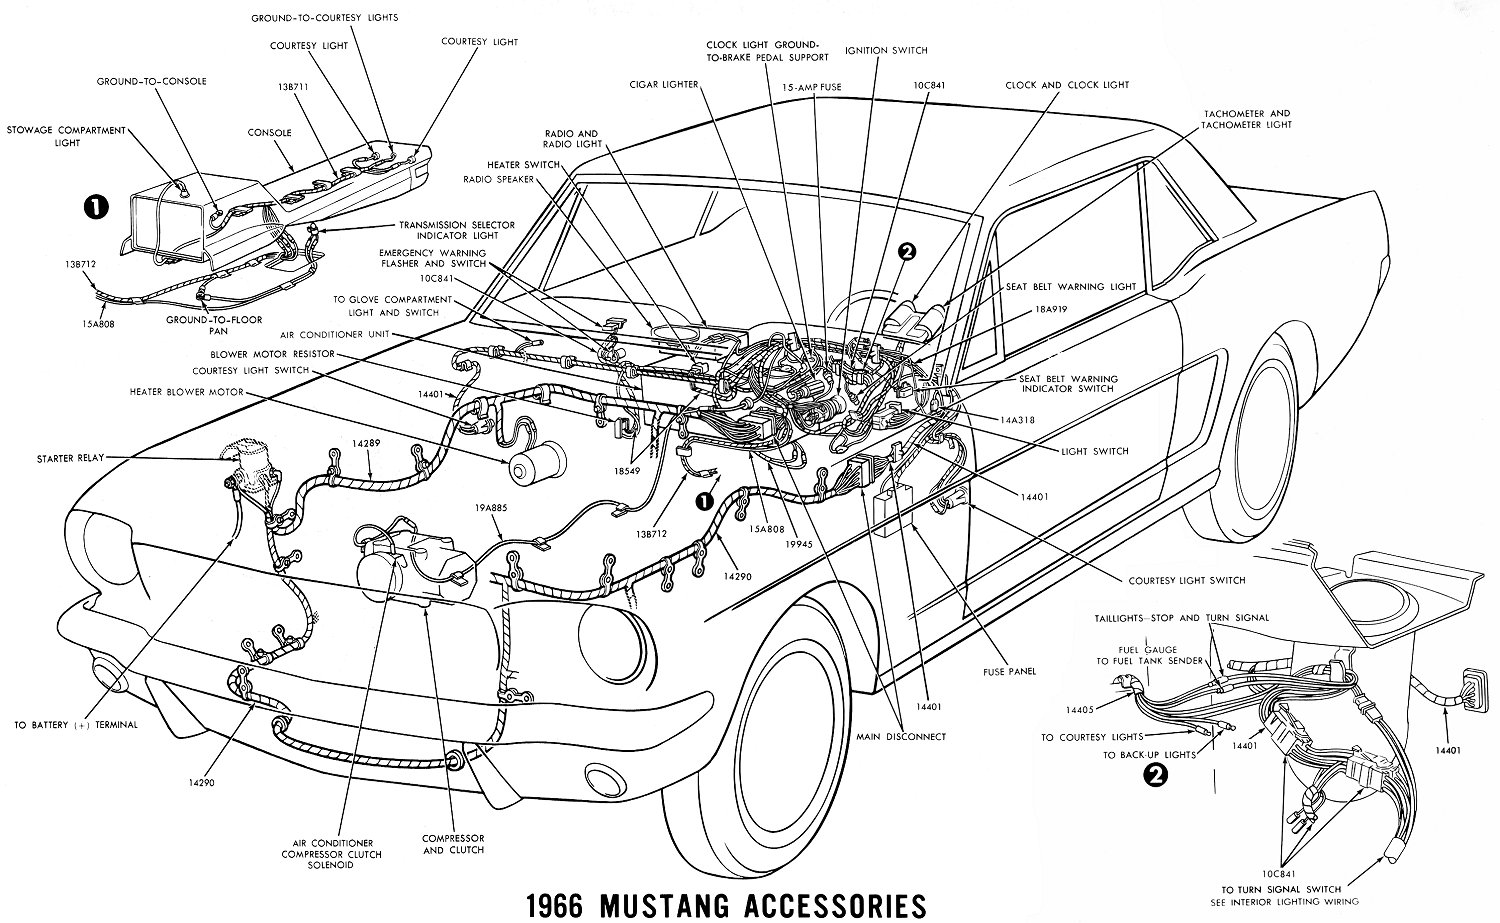 66acces 1966 mustang wiring diagrams average joe restoration 1968 mustang instrument cluster wiring diagram at readyjetset.co